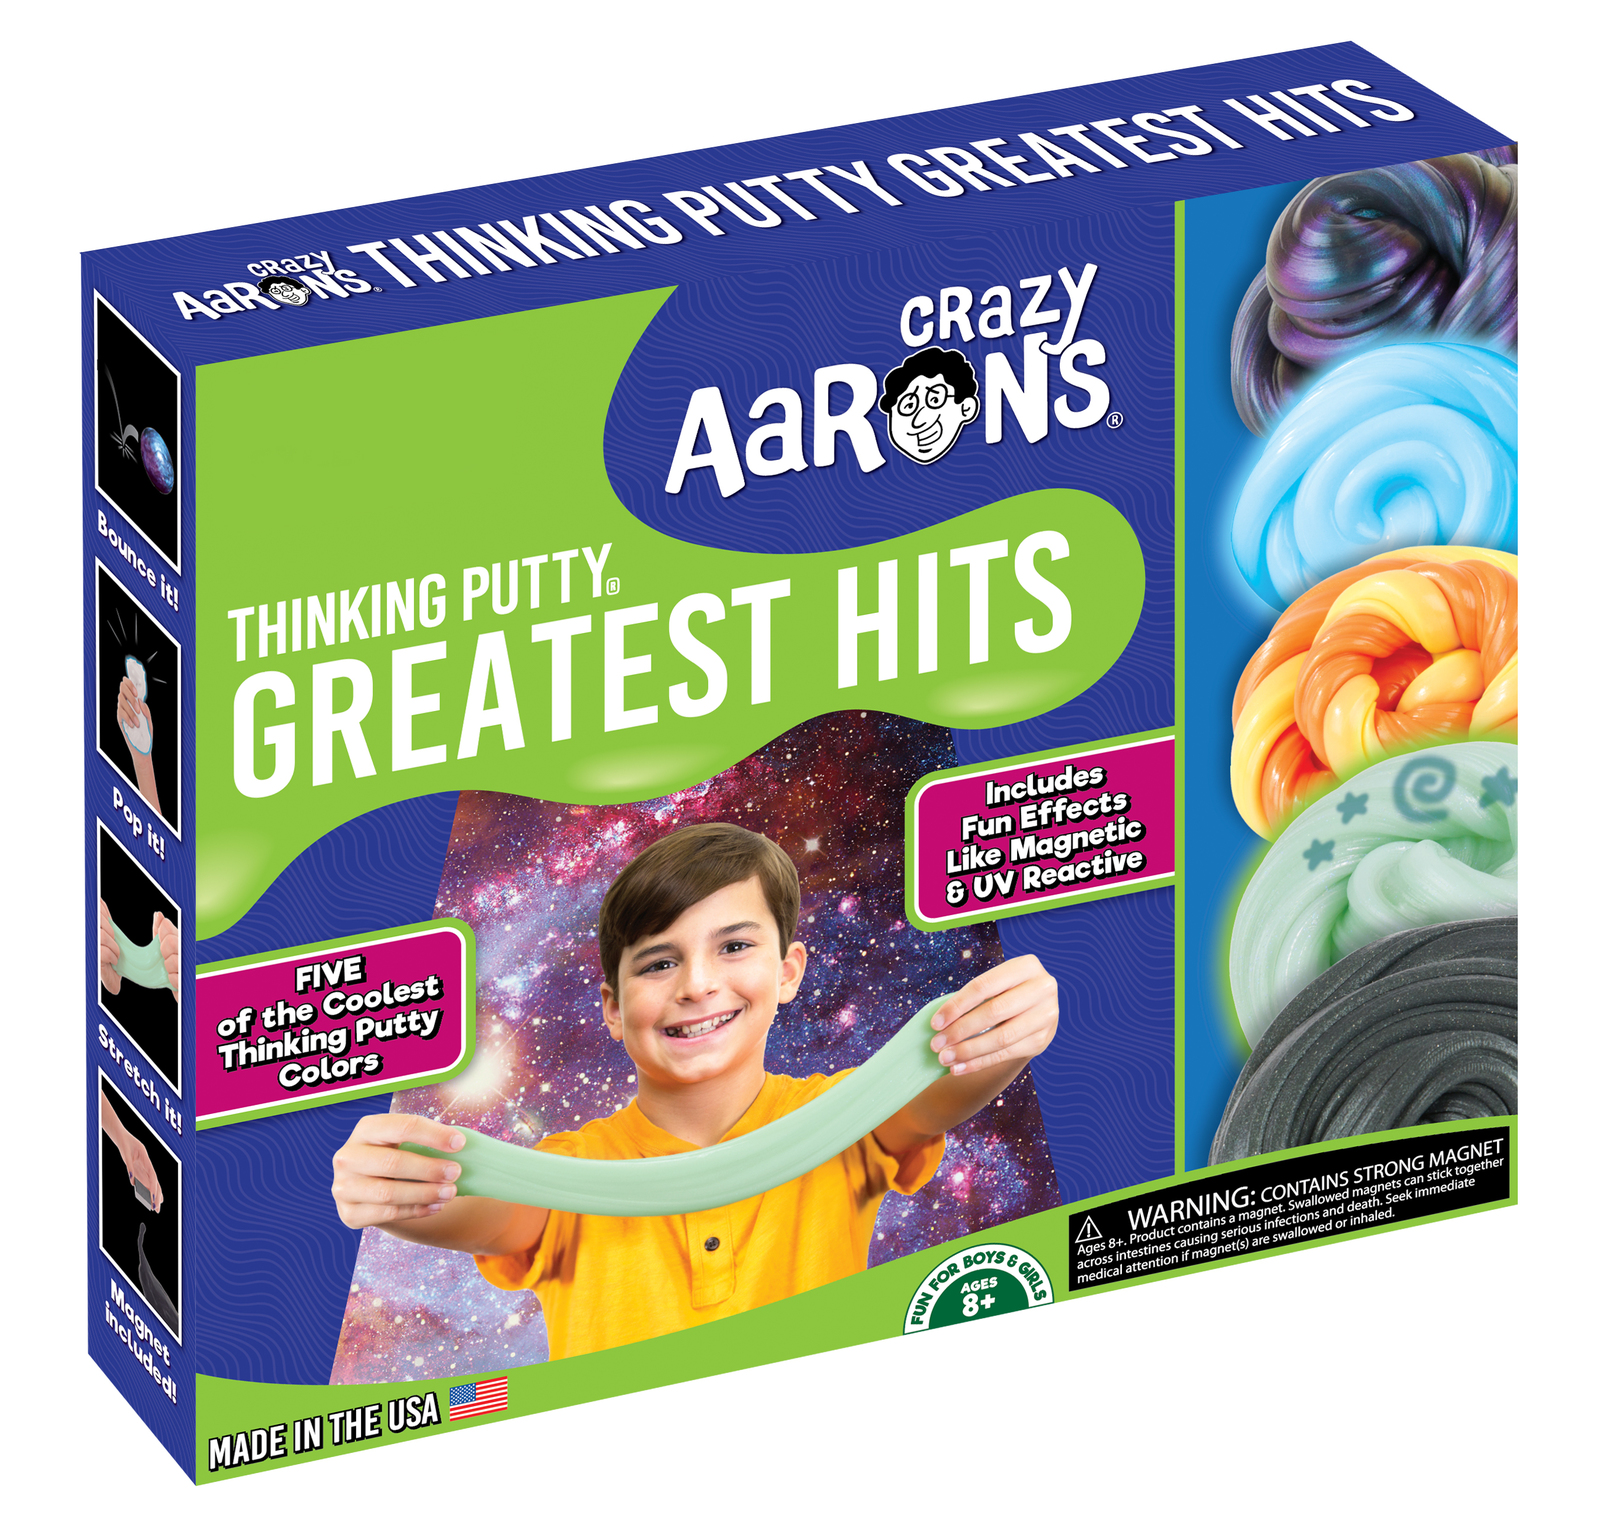 Crazy Aarons: Thinking Putty - Greatest Hits Box image